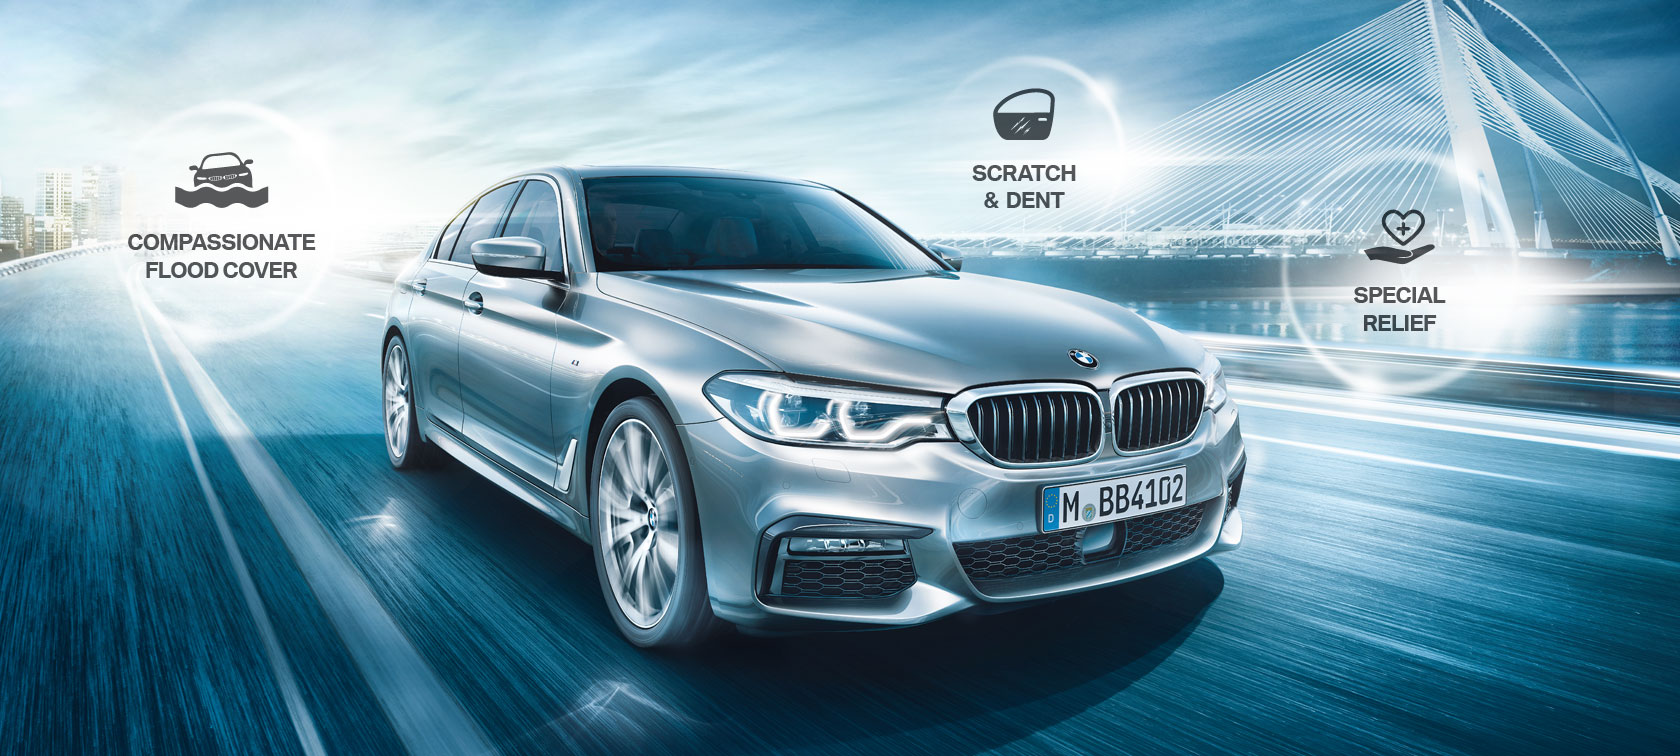 BMW Ultimate Protection Programme+